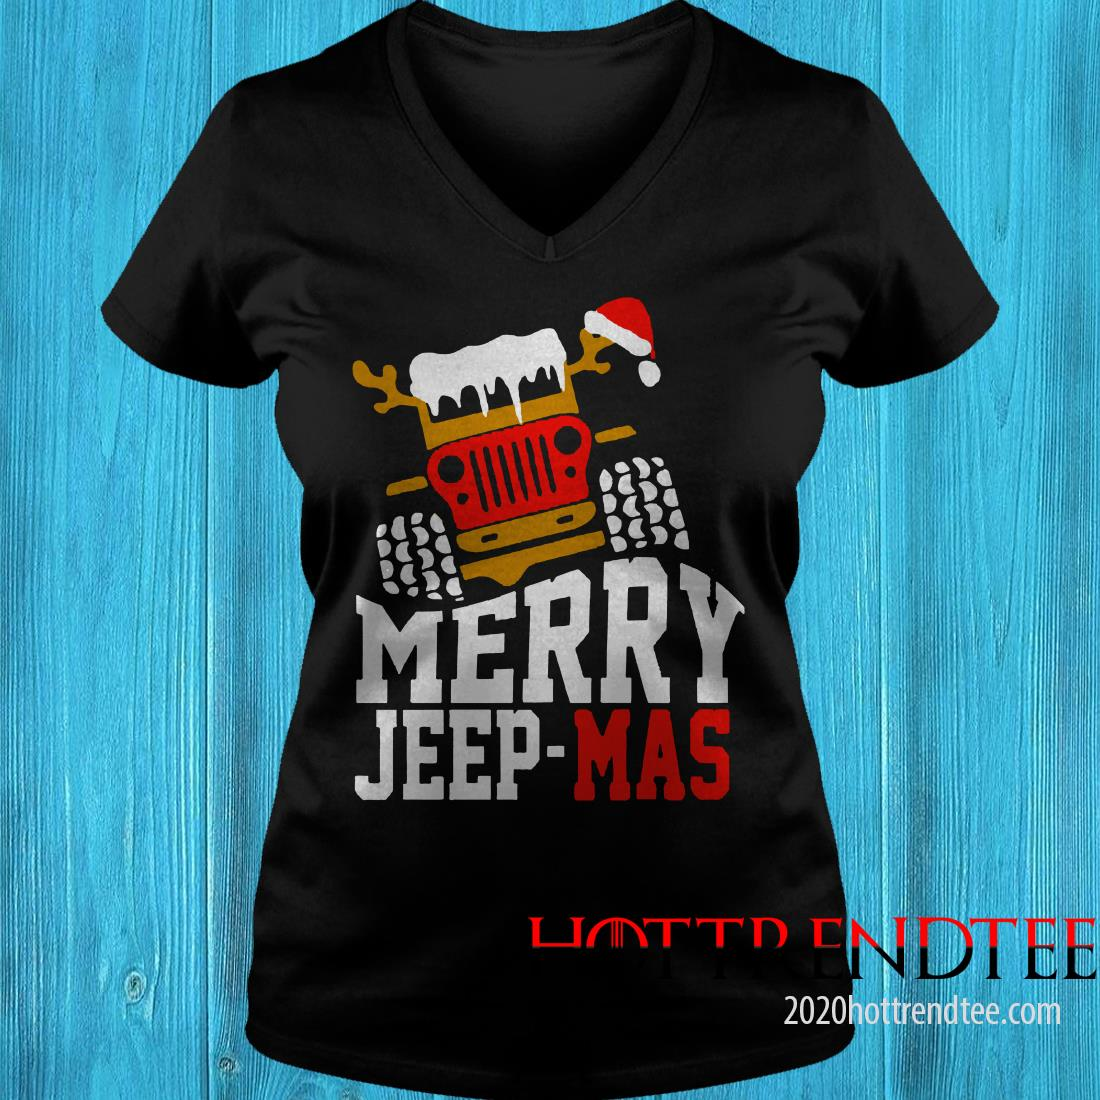 Merry Jeep Mas Women's T-shirt